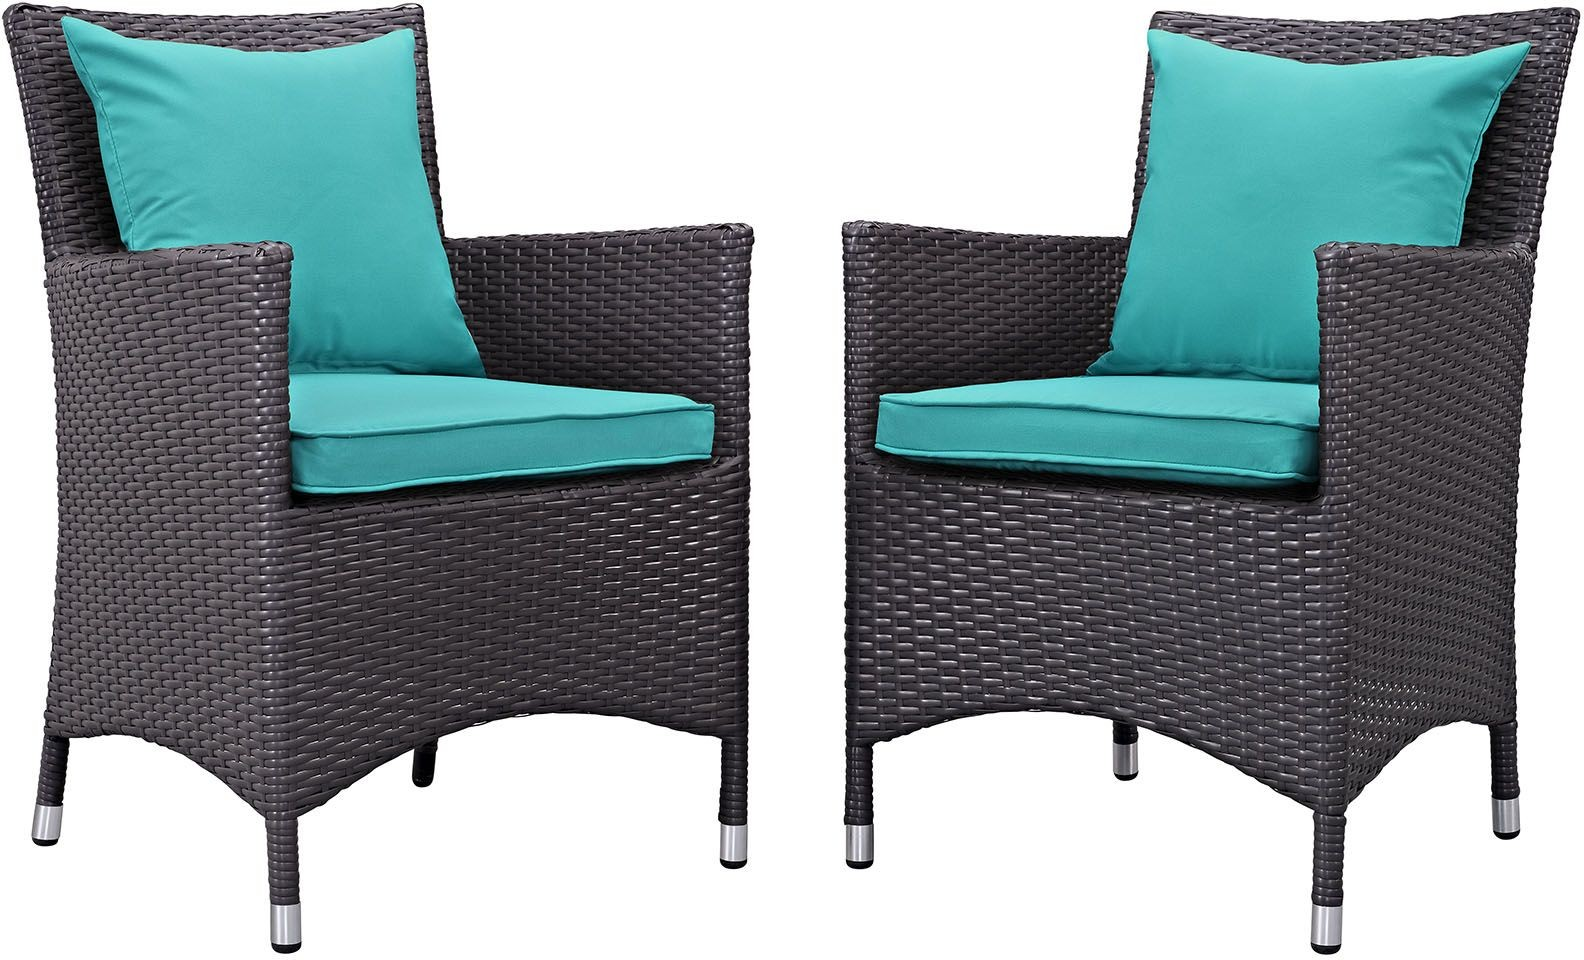 turquoise patio chairs folding table with chair storage inside convene espresso 2 piece outdoor dining